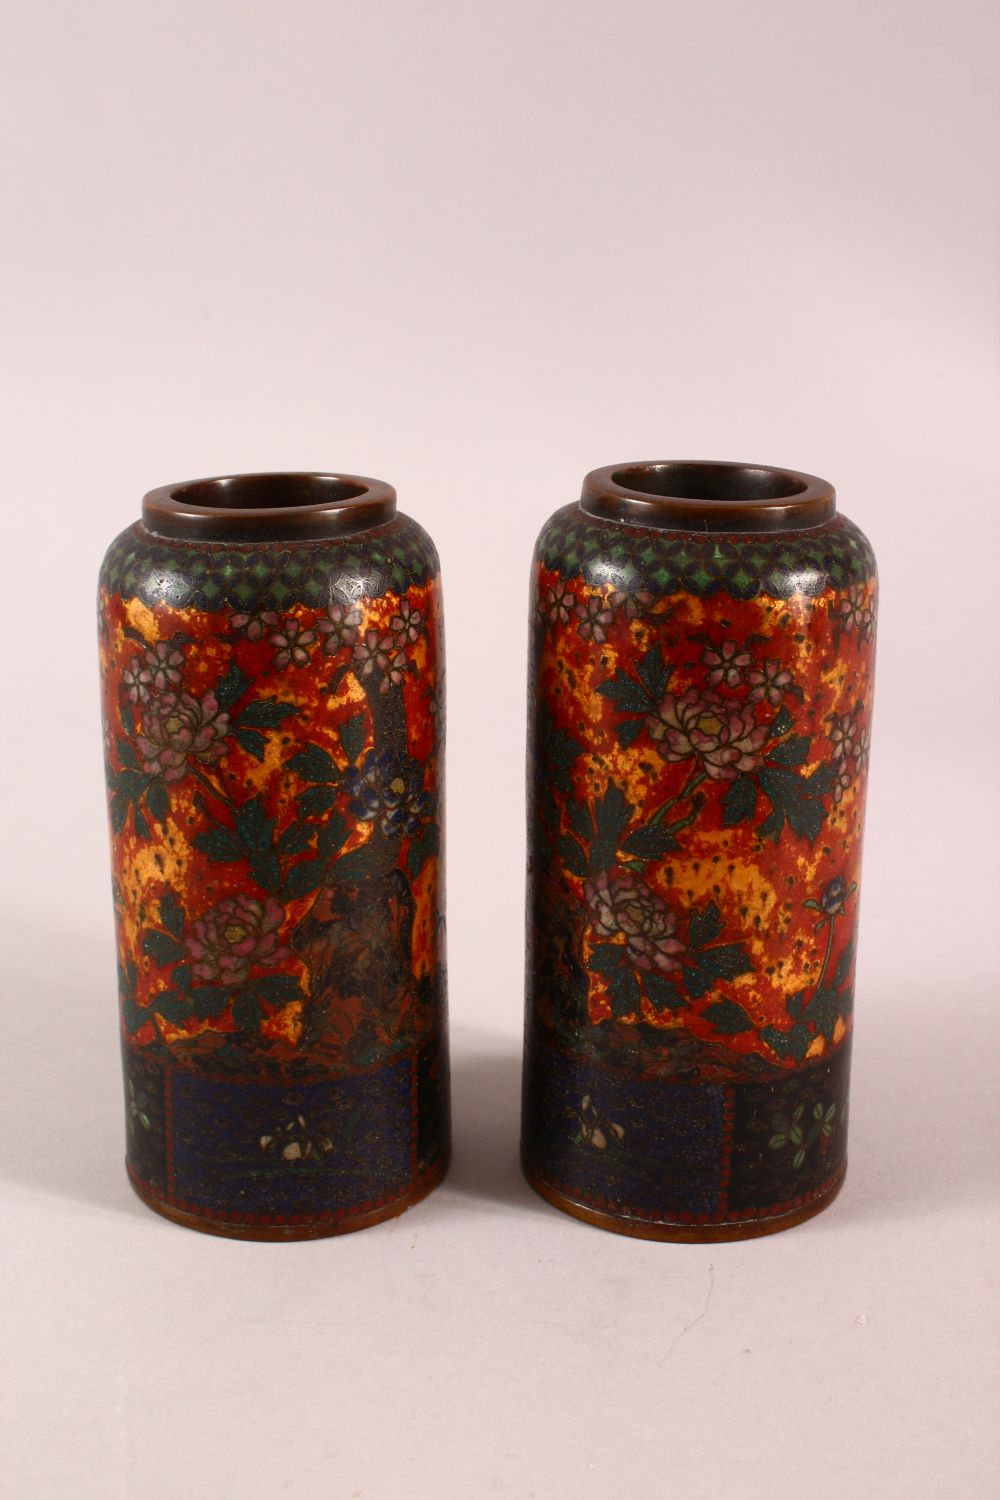 A PAIR OF JAPANESE CLOISONNE VASES OF CYLINDRICAL FORM, gold ground, 15cm high. - Image 3 of 5